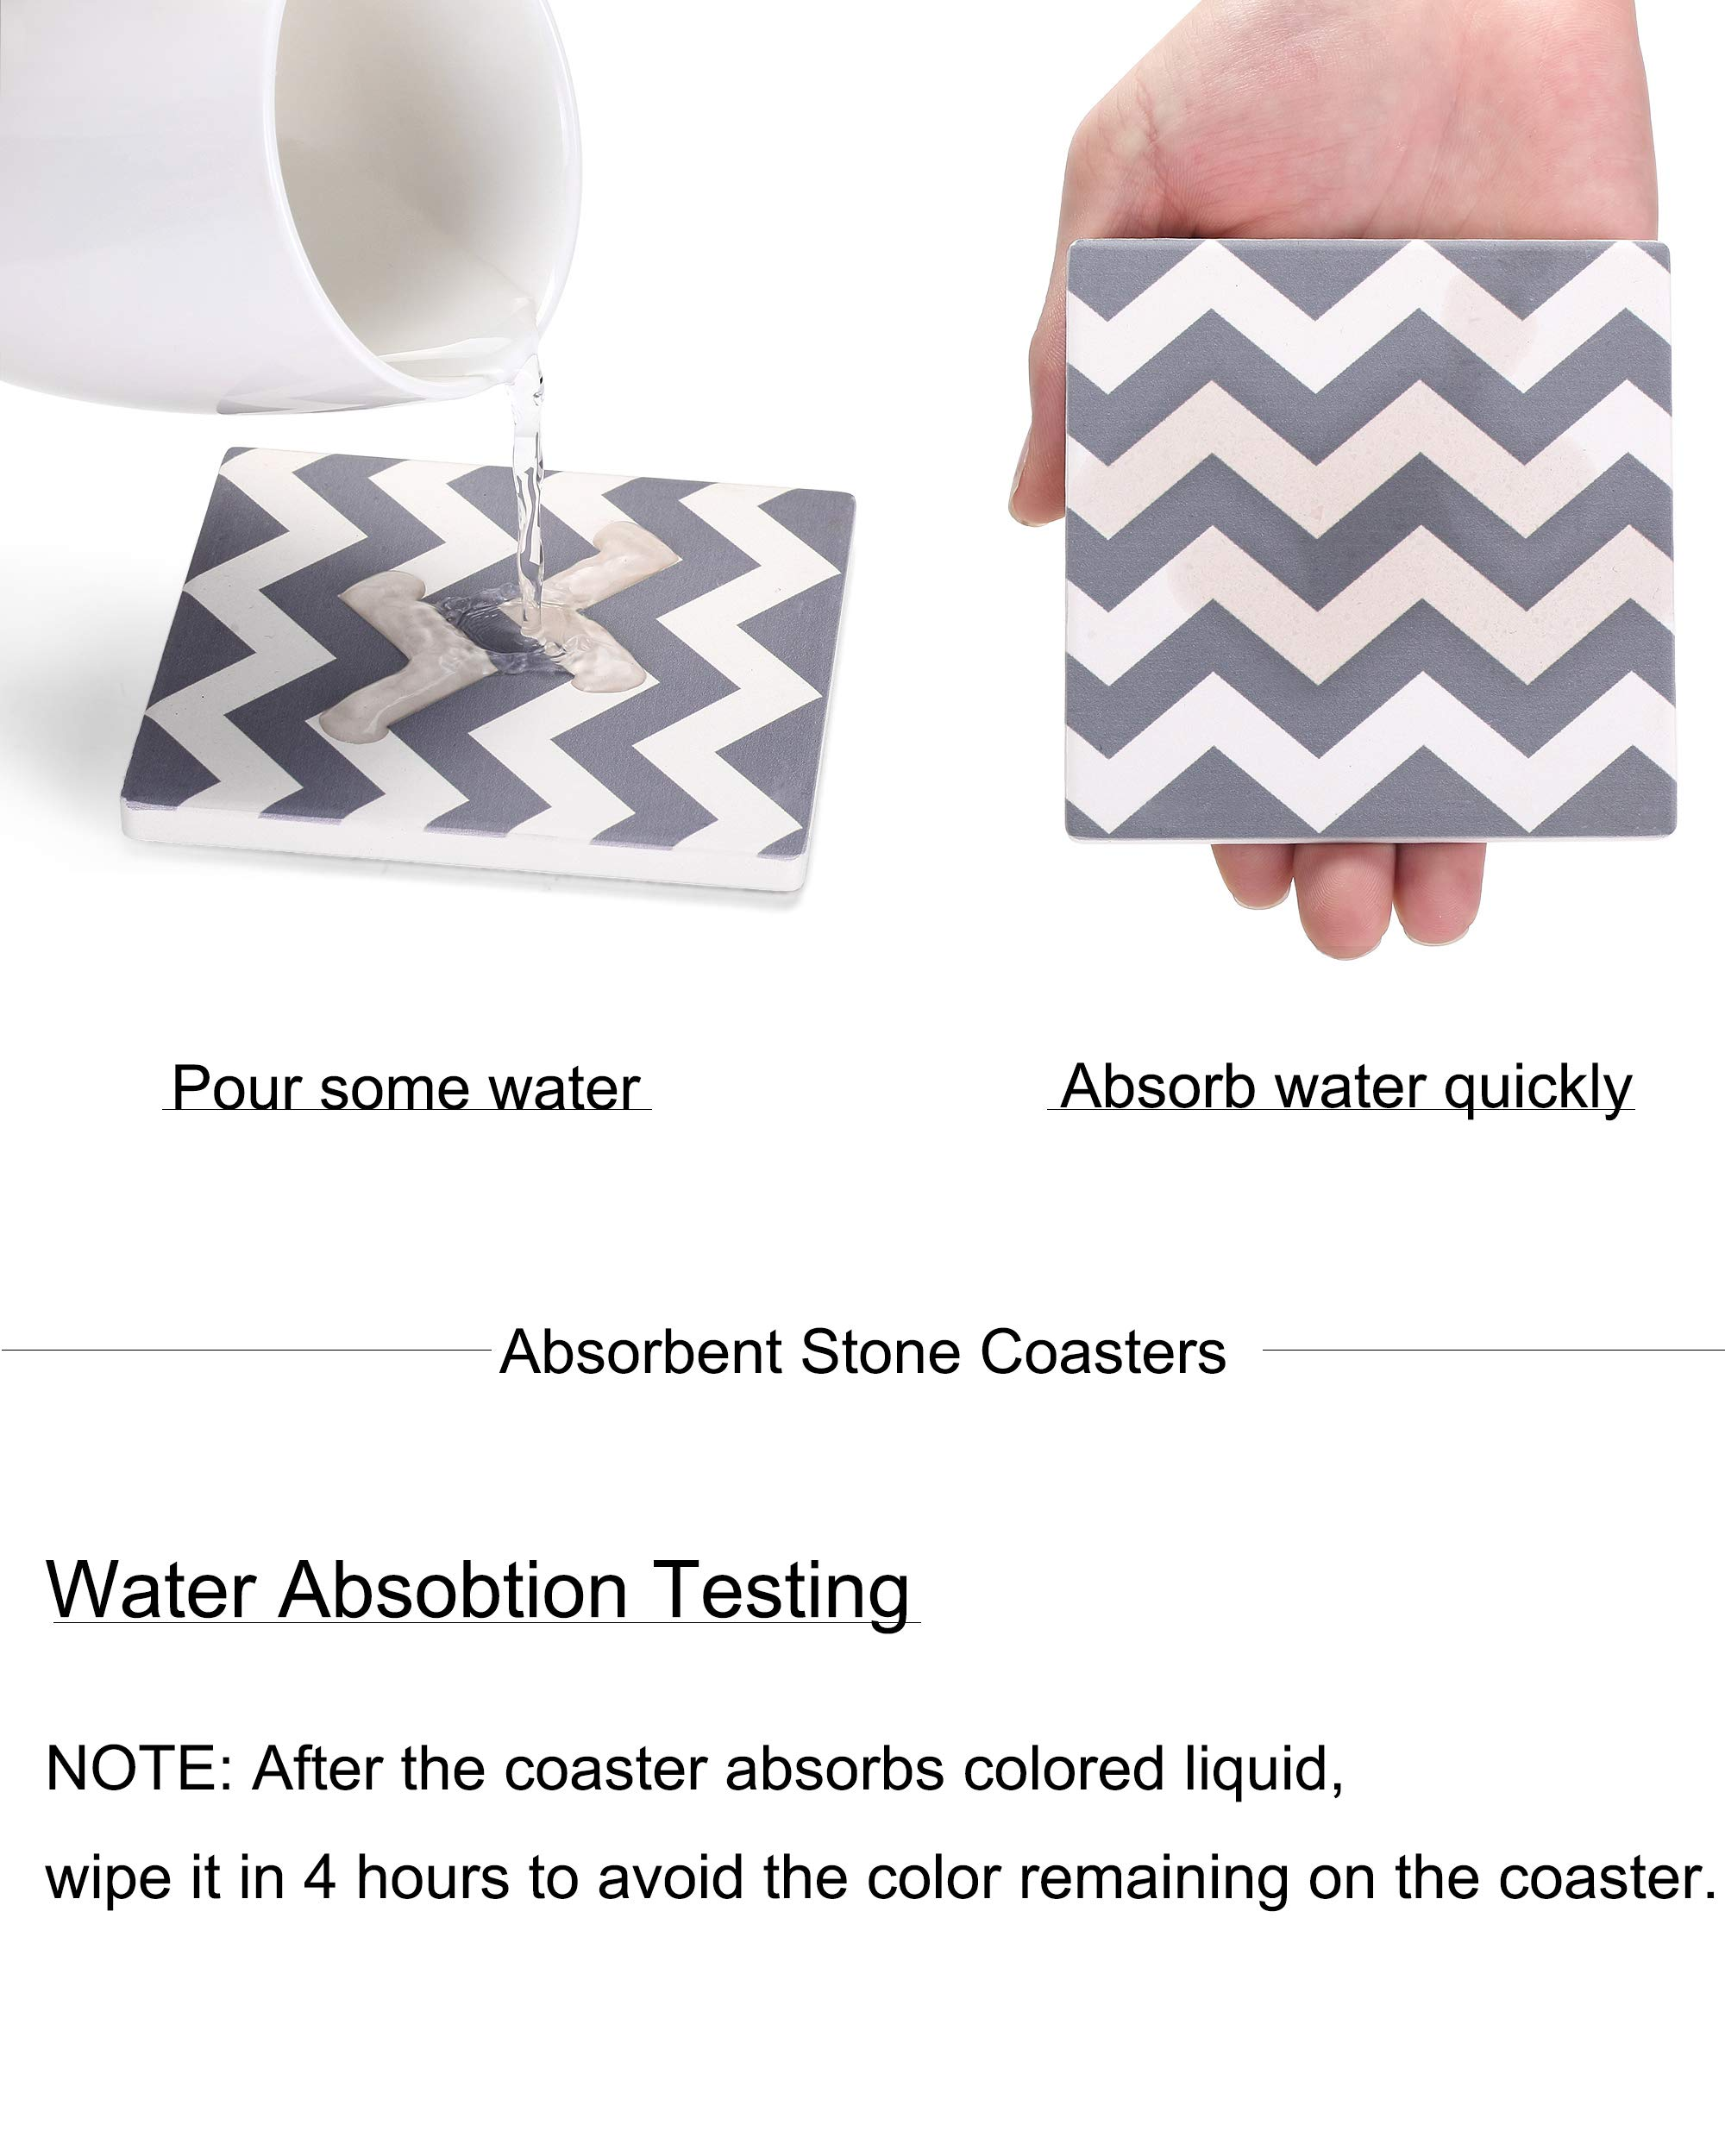 MIWARE Absorbent Stone Drink Coasters - 6 Packs Coaster Set, Grey Waves Style